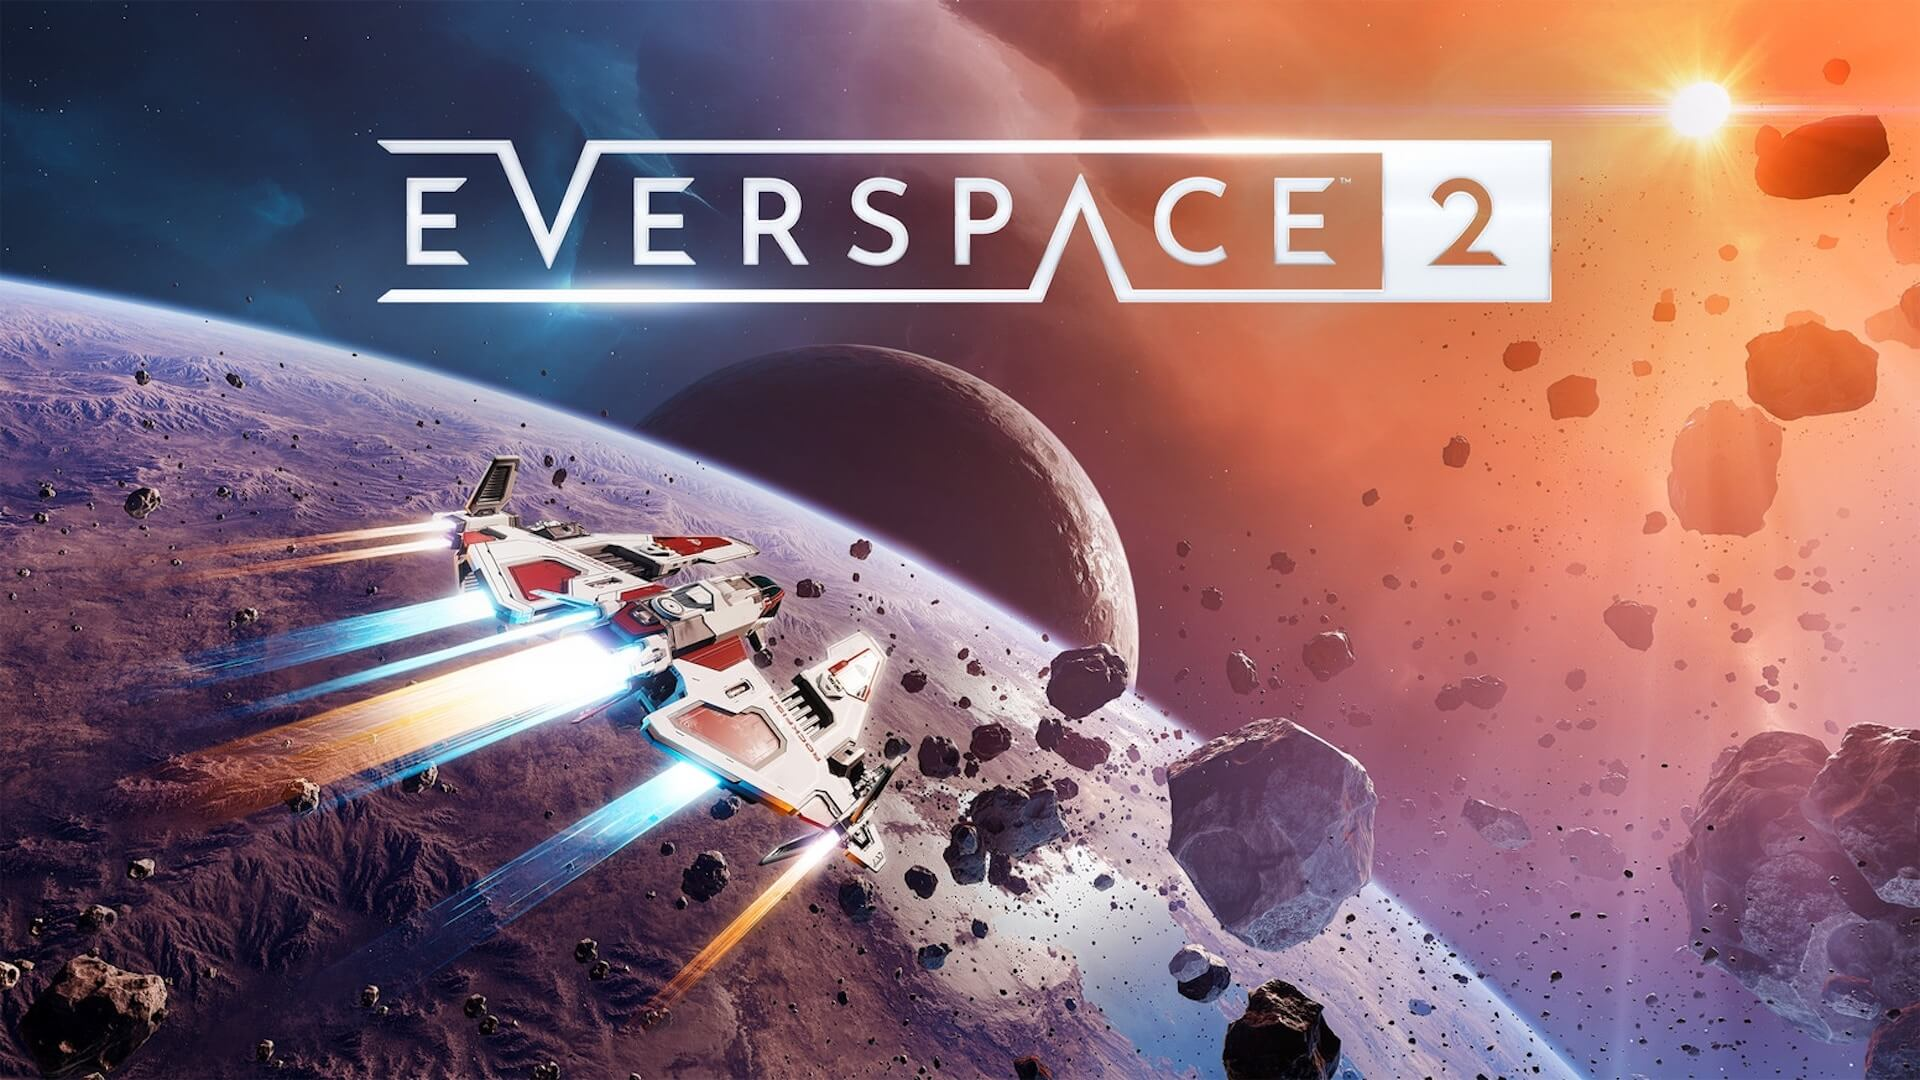 EVERSPACE 2 Enters Early Access on January 18